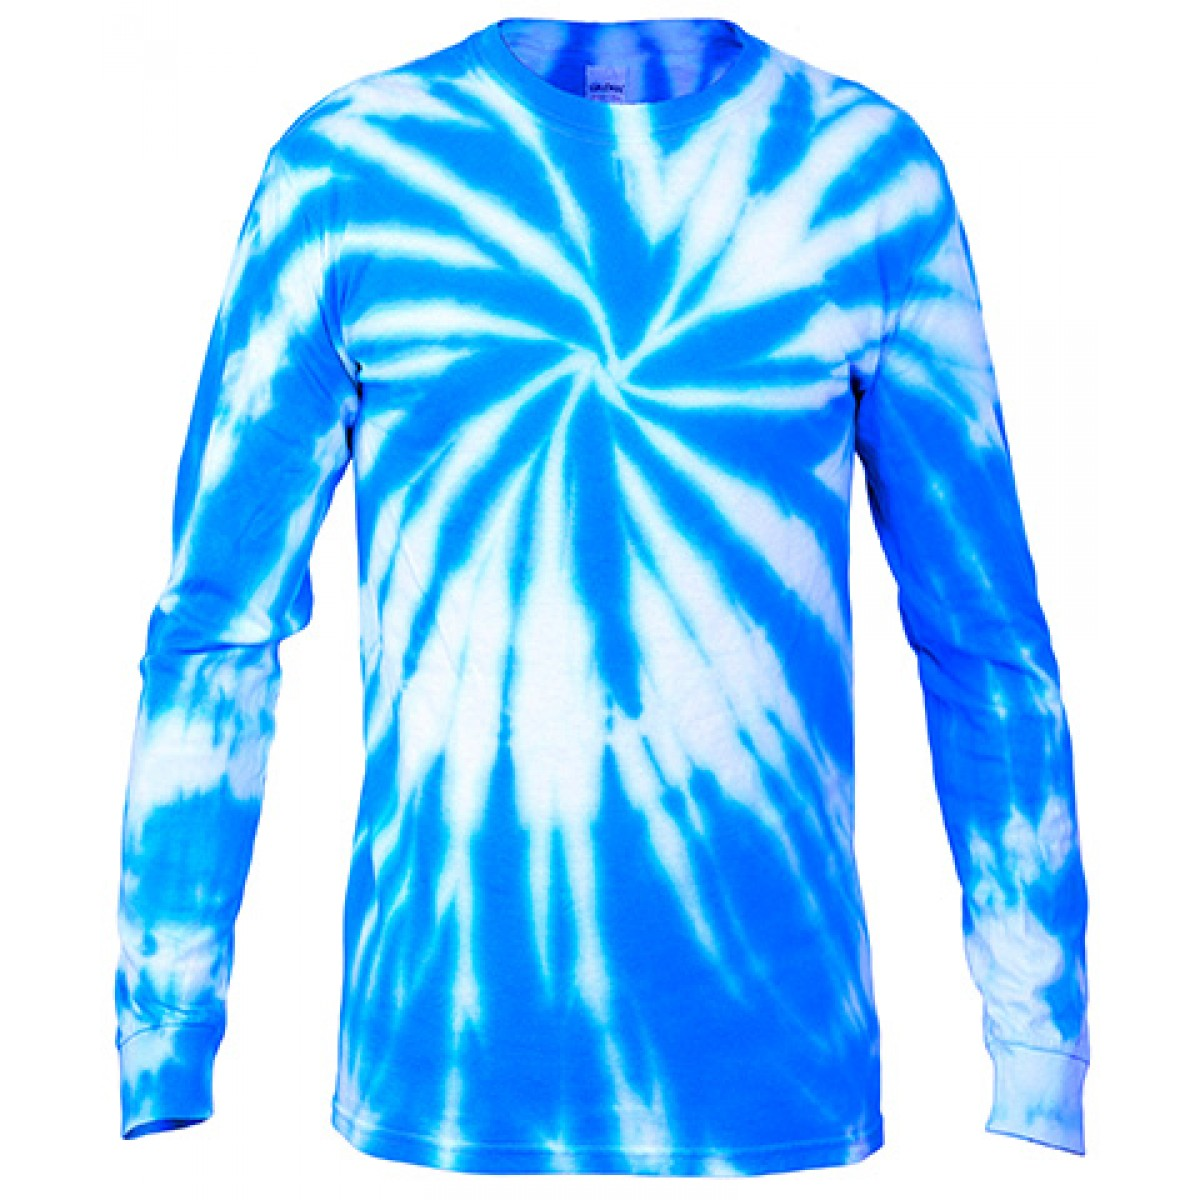 Multi Color Tie-Dye Long Sleeve Shirt -Blue-L